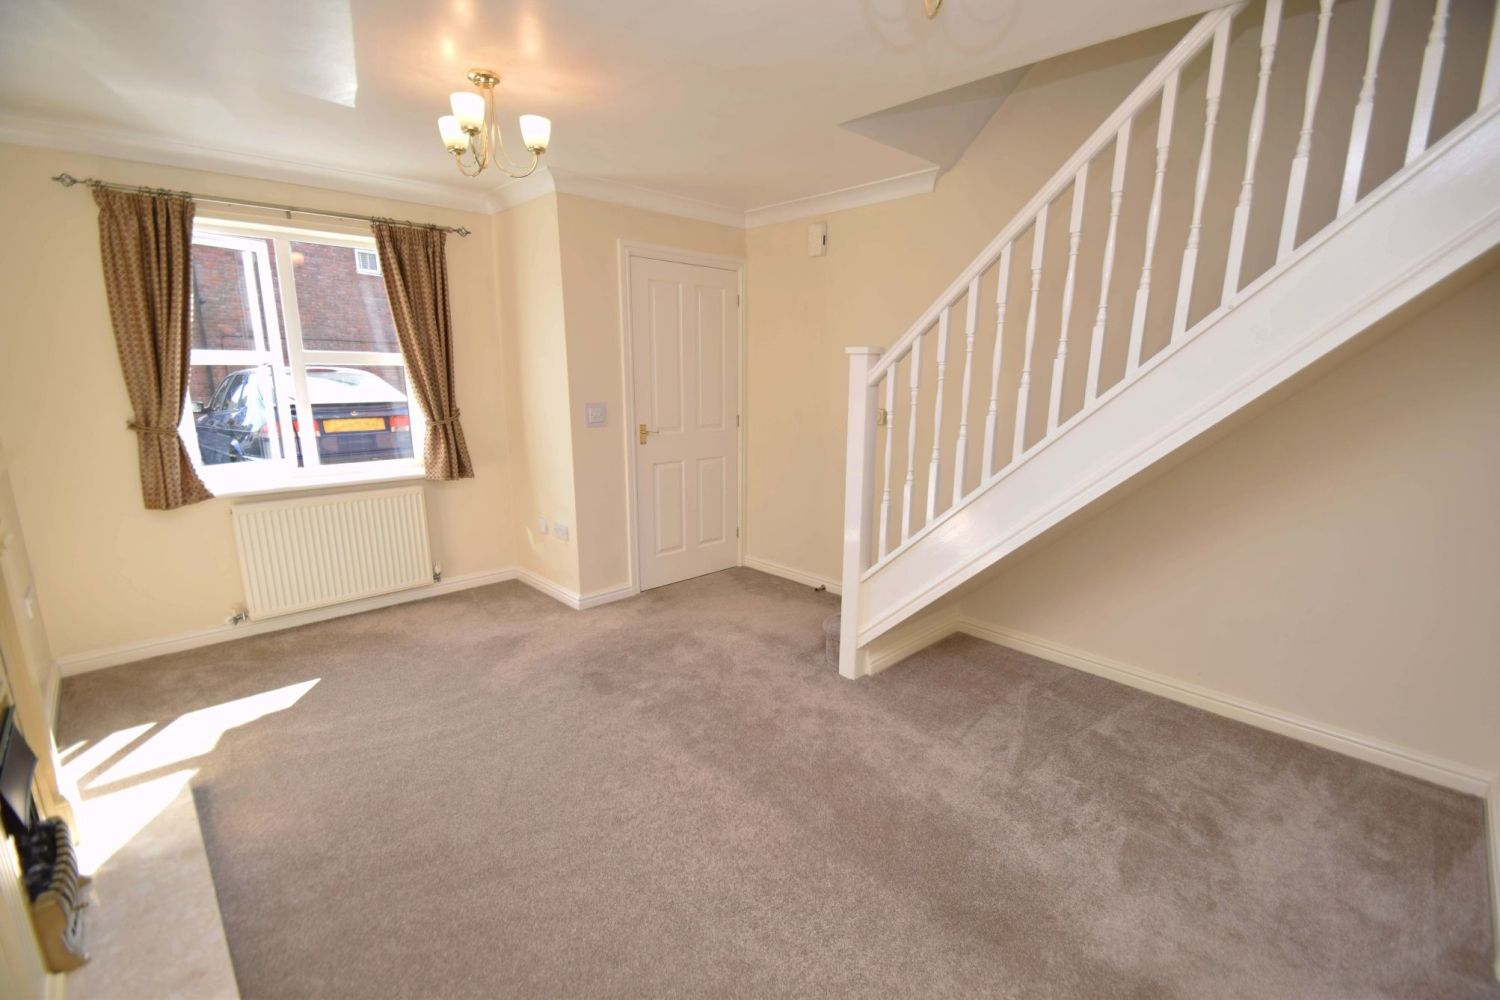 2 bed terraced for sale in Mallow Drive, Woodland Grange  - Property Image 3